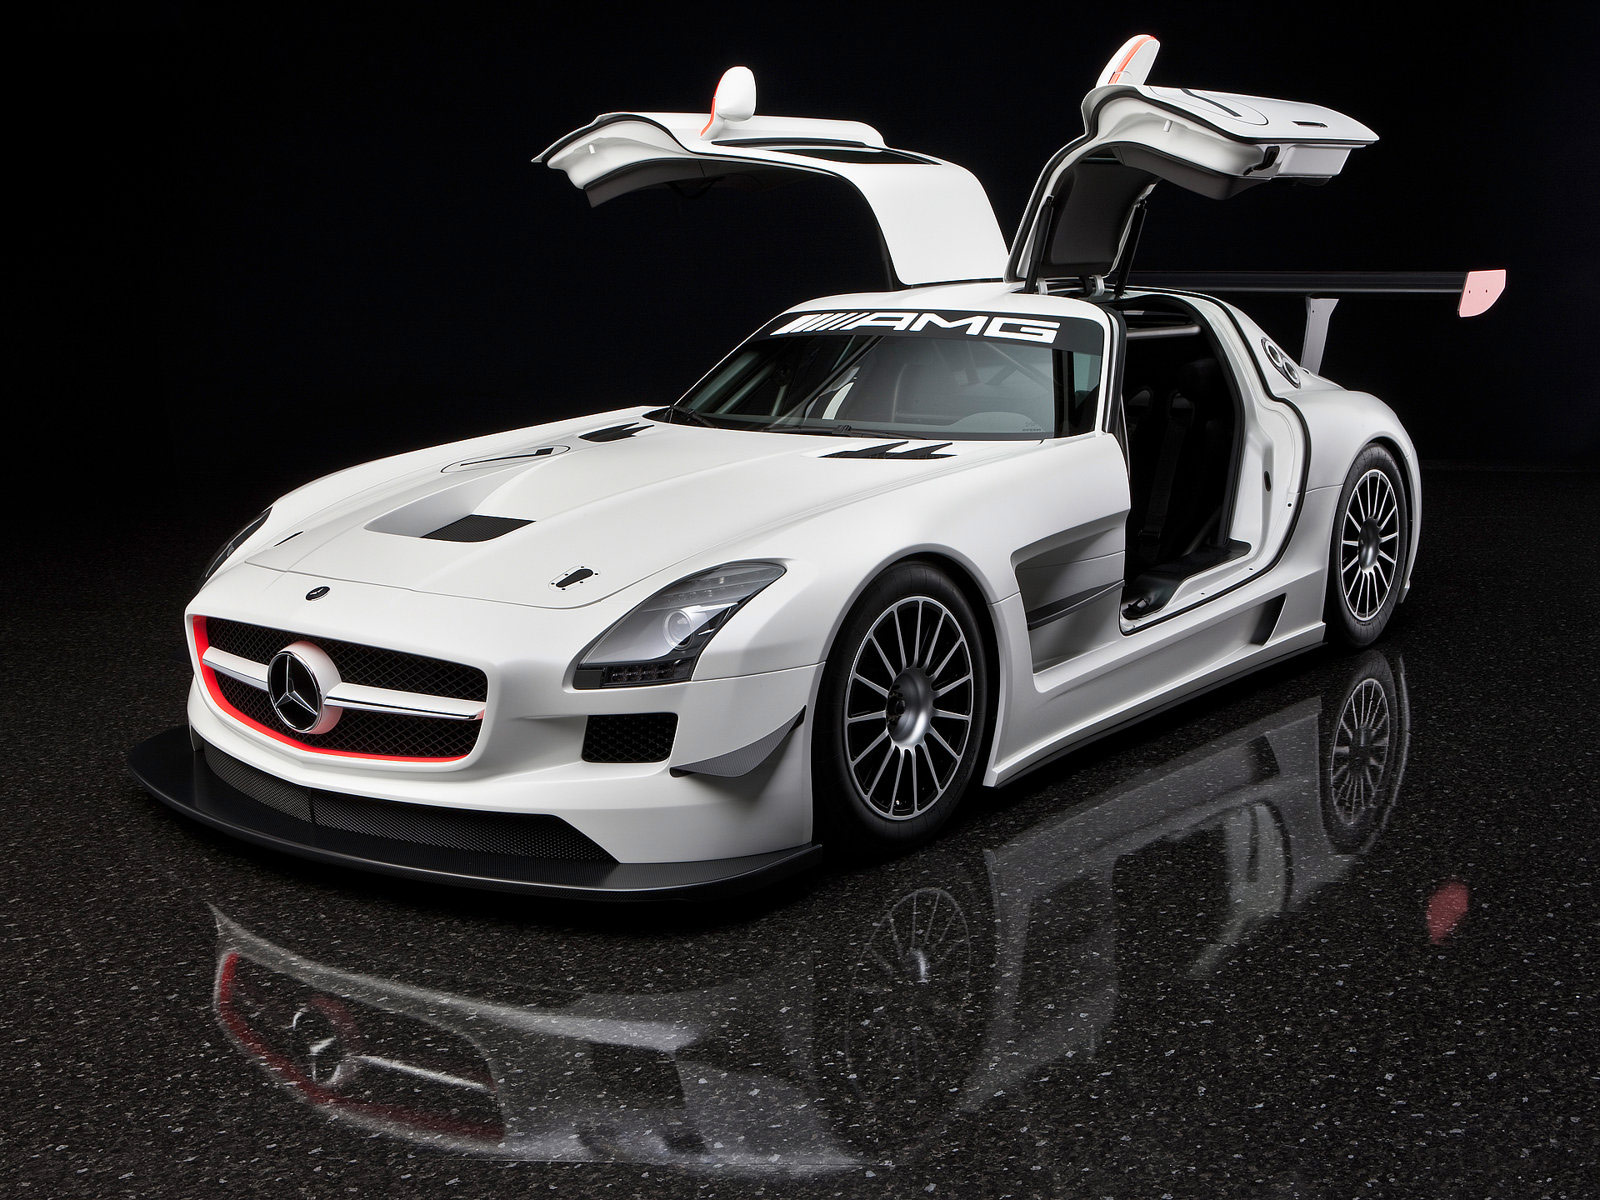 2011 mercedes benz sls amg gt3 car wallpaper for Mercedes benz cars images